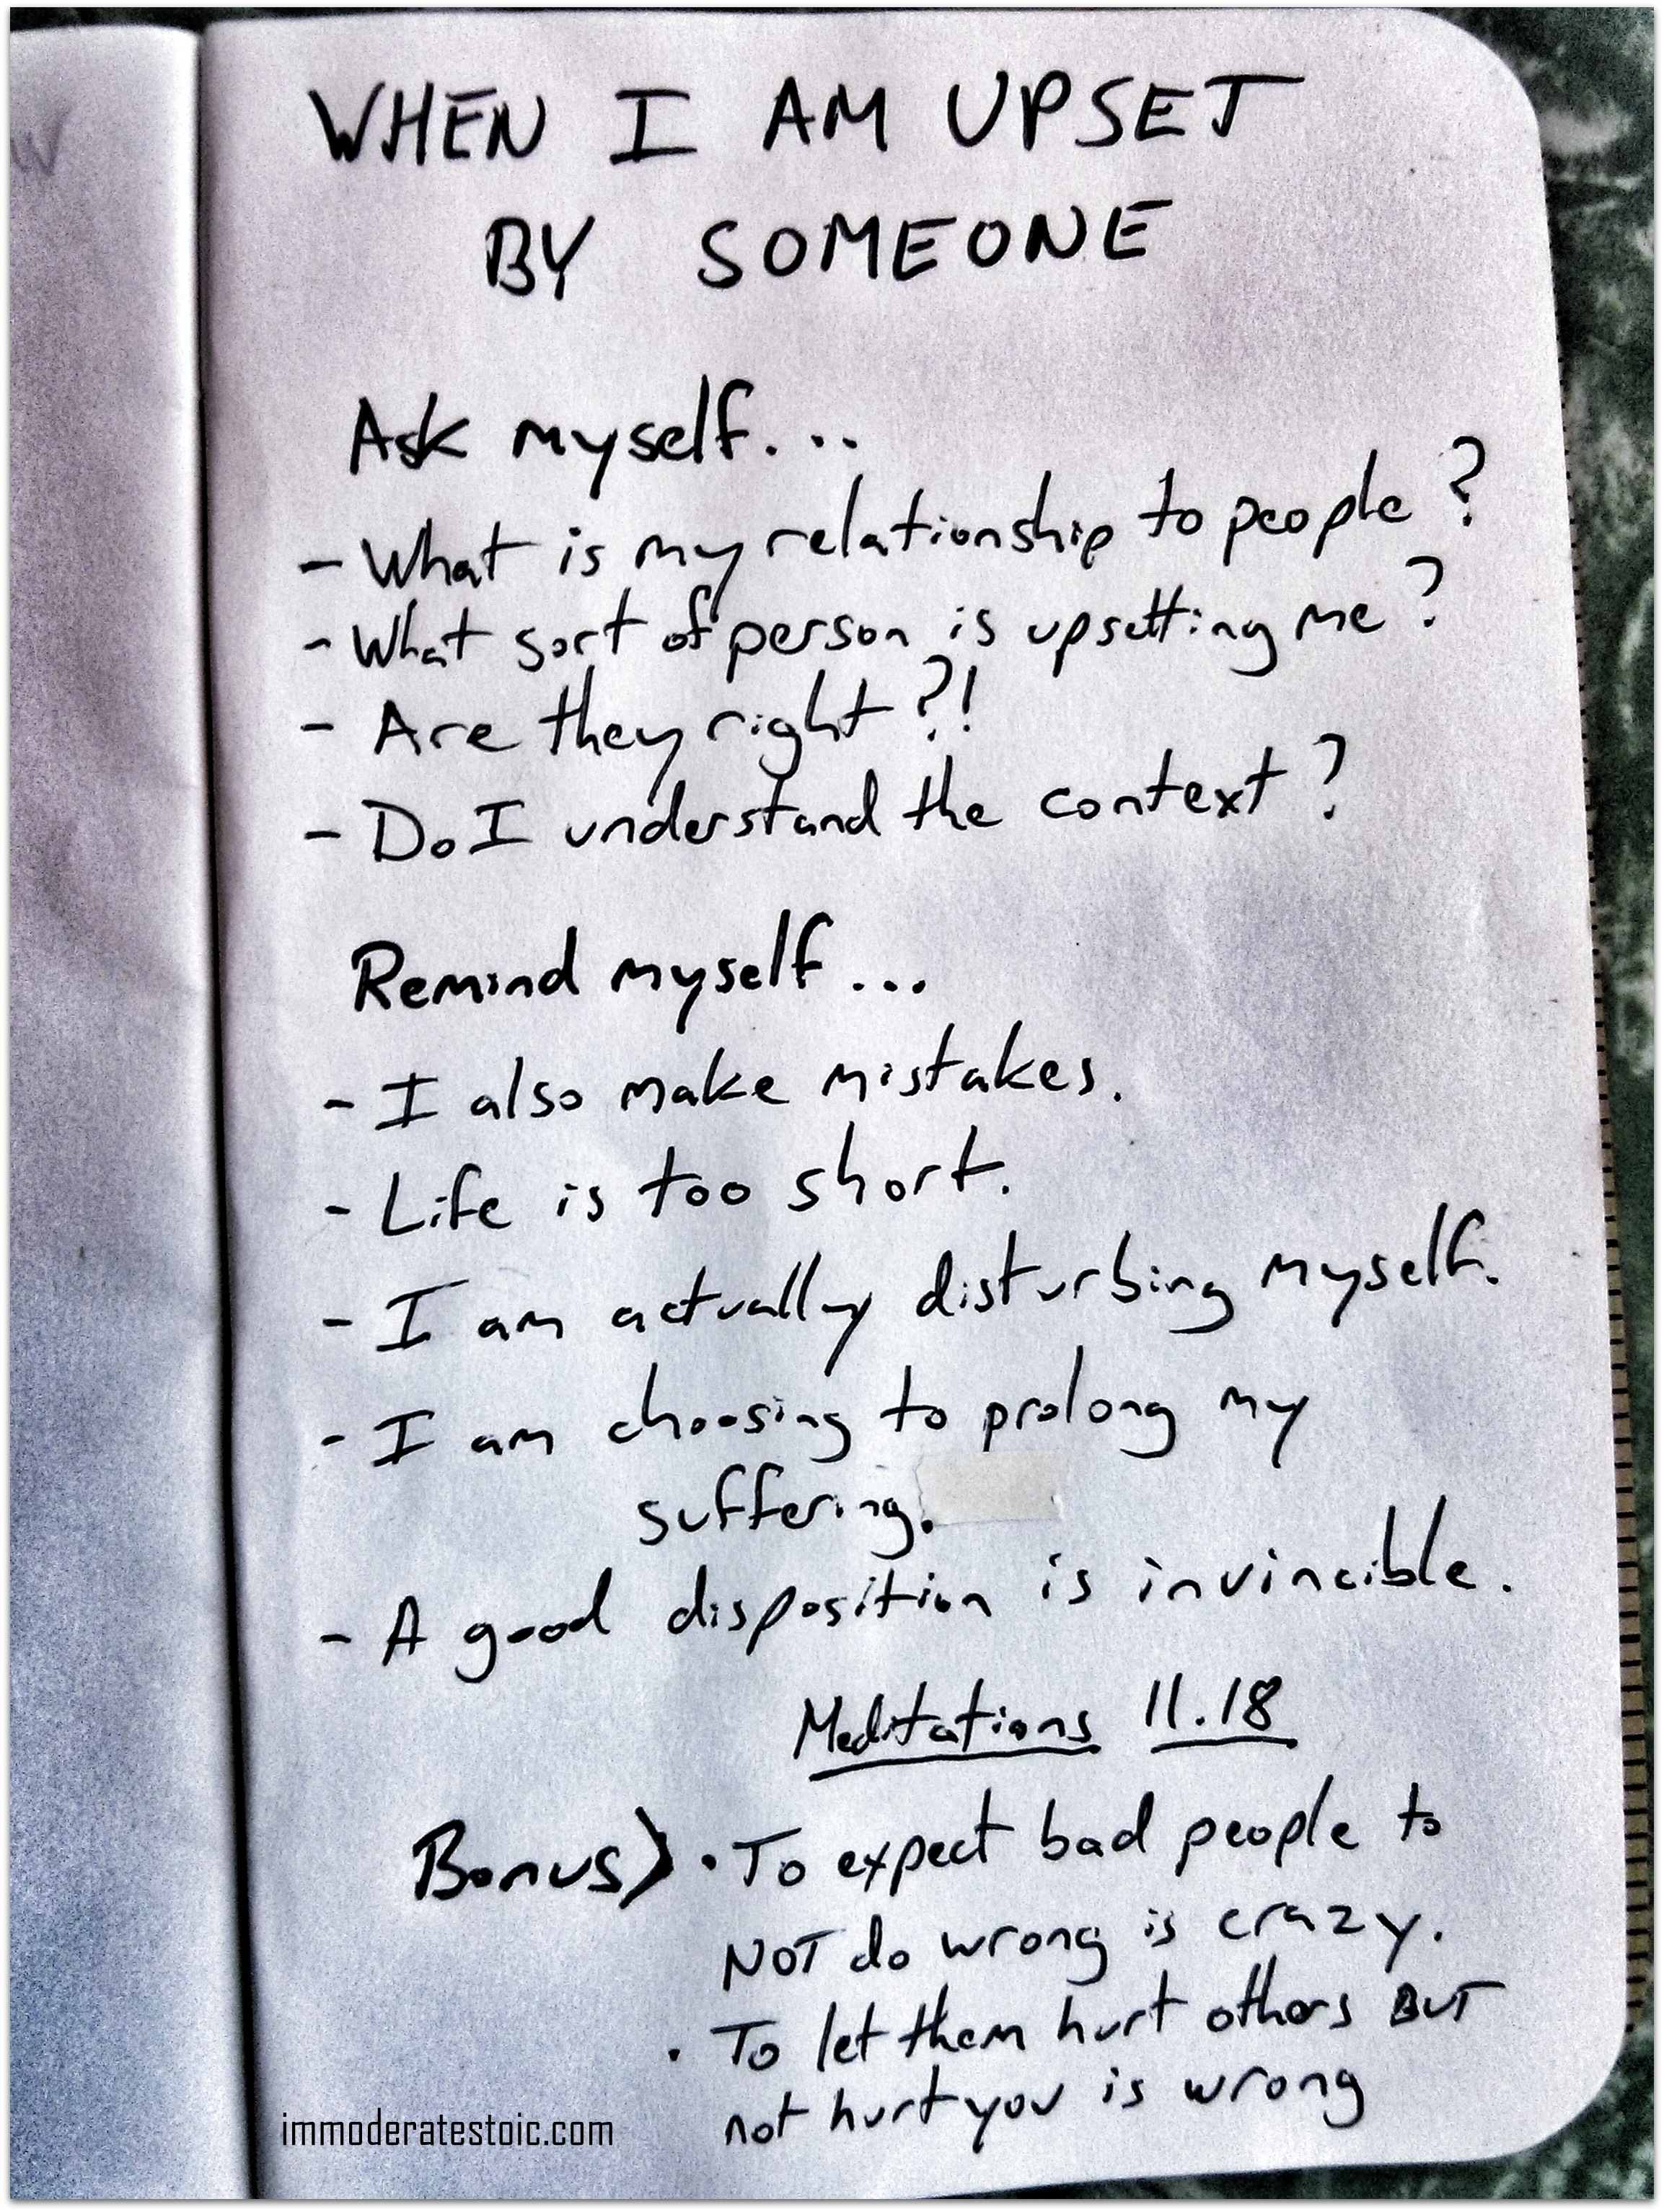 A page from Matt Van Natta's notebook. Points derived from Marcus Aurelius' Meditations, 11.18.